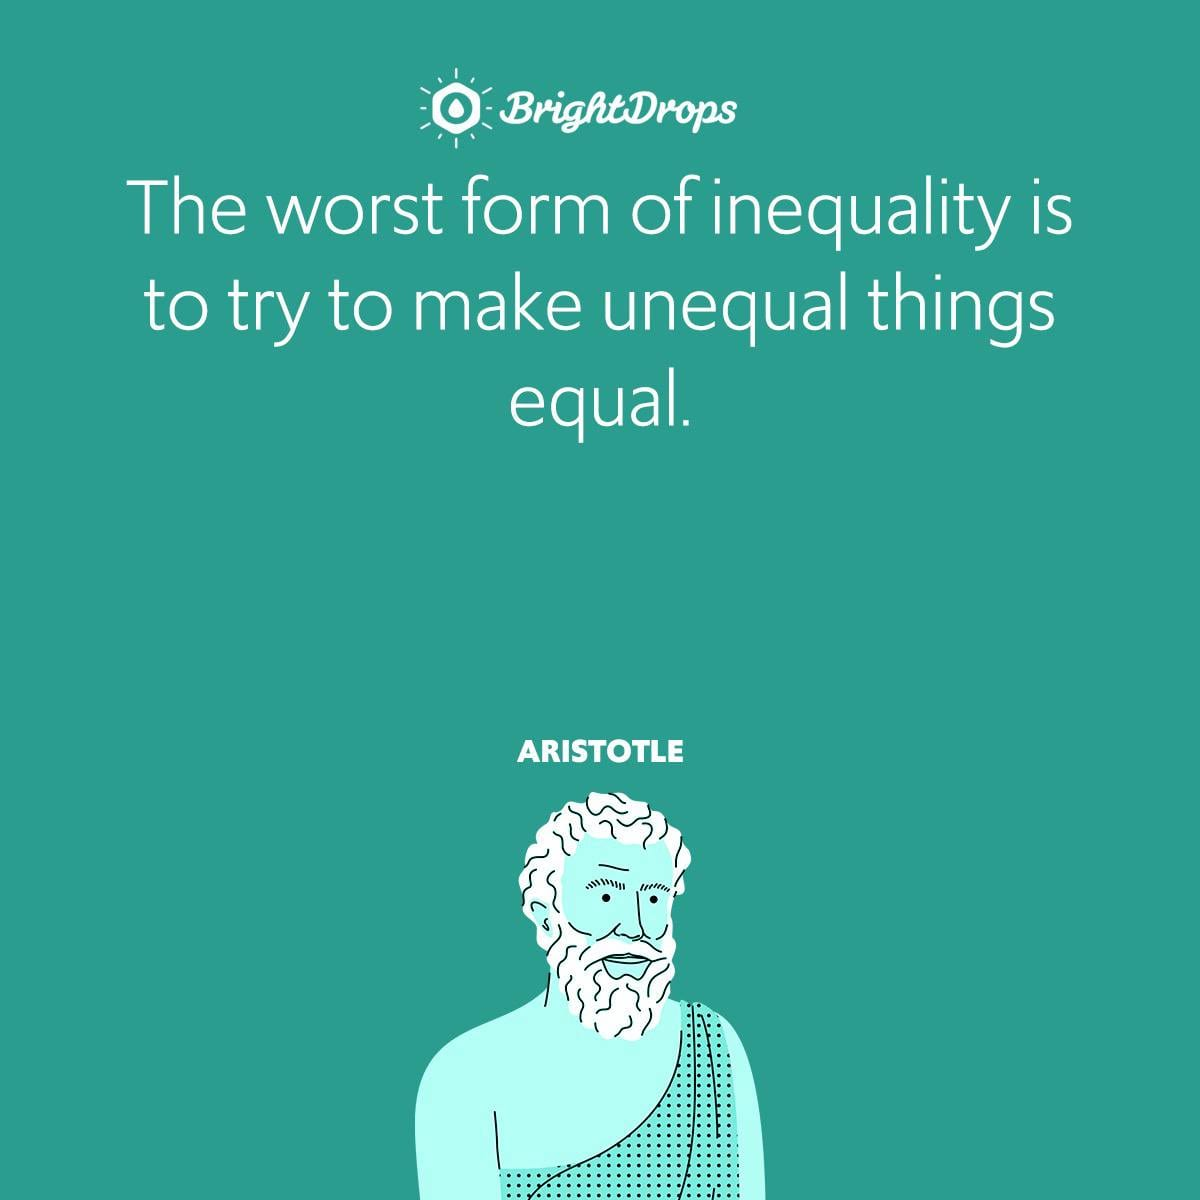 The worst form of inequality is to try to make unequal things equal.